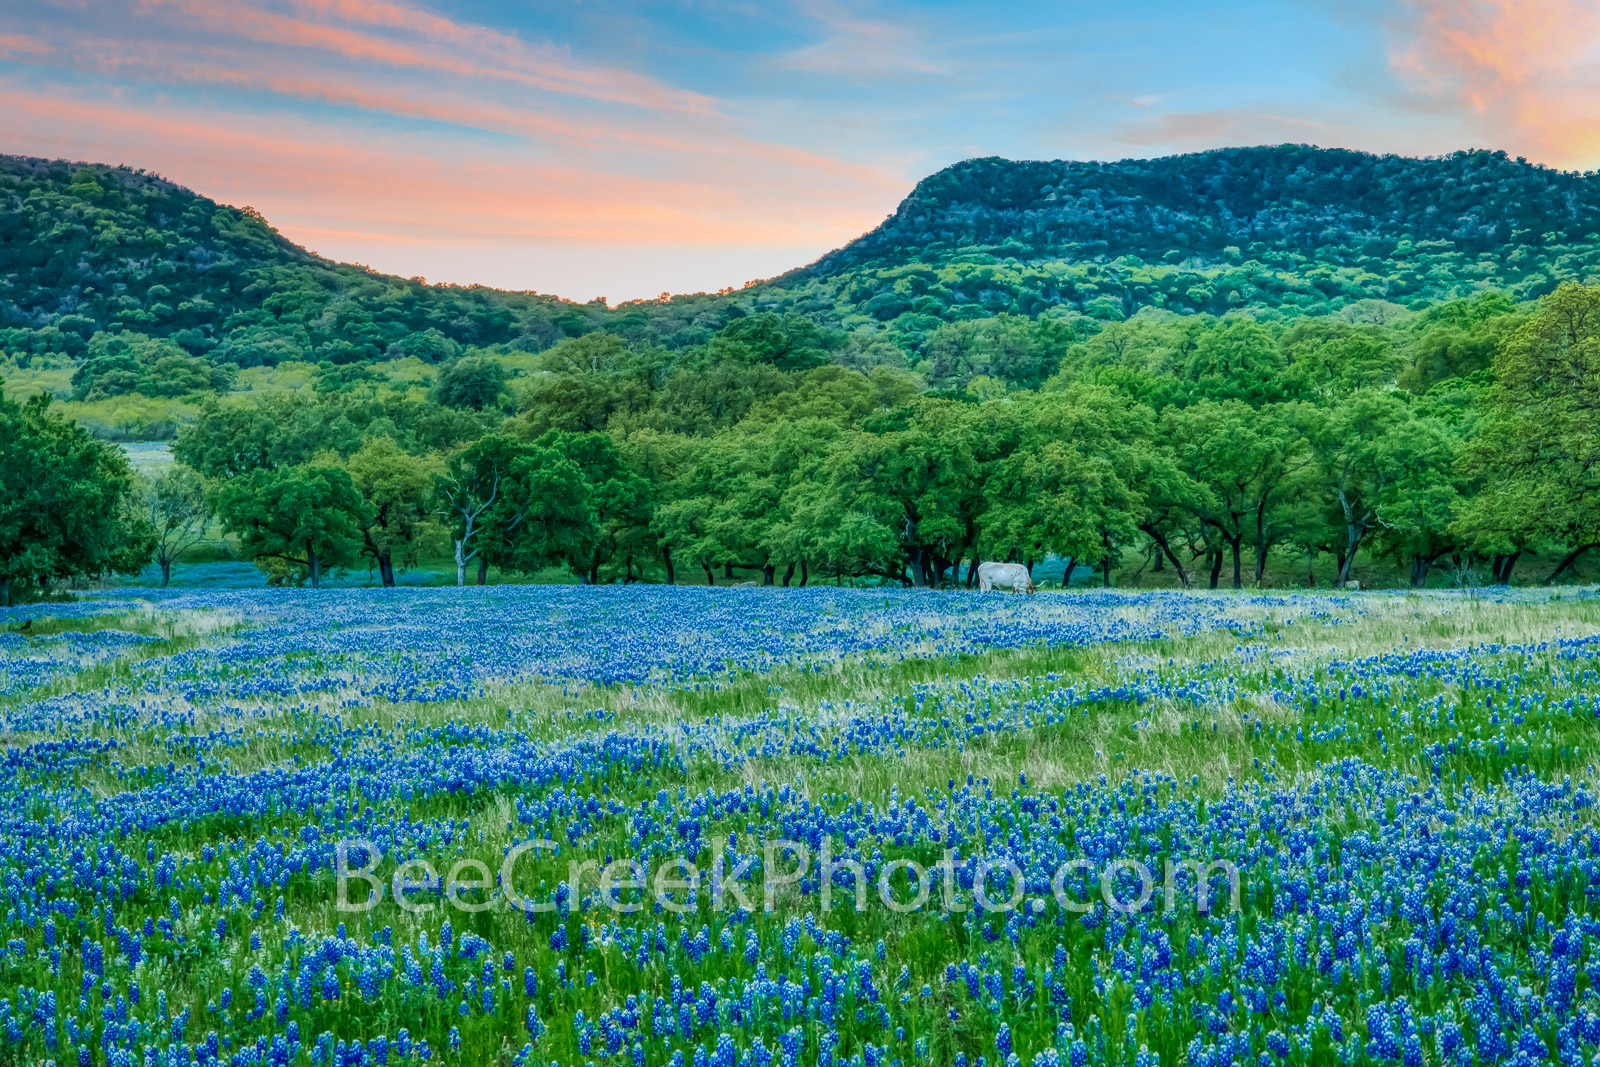 texas bluebonnets, bluebonnets, texas hill country, hill country, texas wildflowers, longhorn, cattle, wildflowers, blue bonnets, dusk, sunset, lupinus texensis, central texas, hills, lupine, lone sta, photo